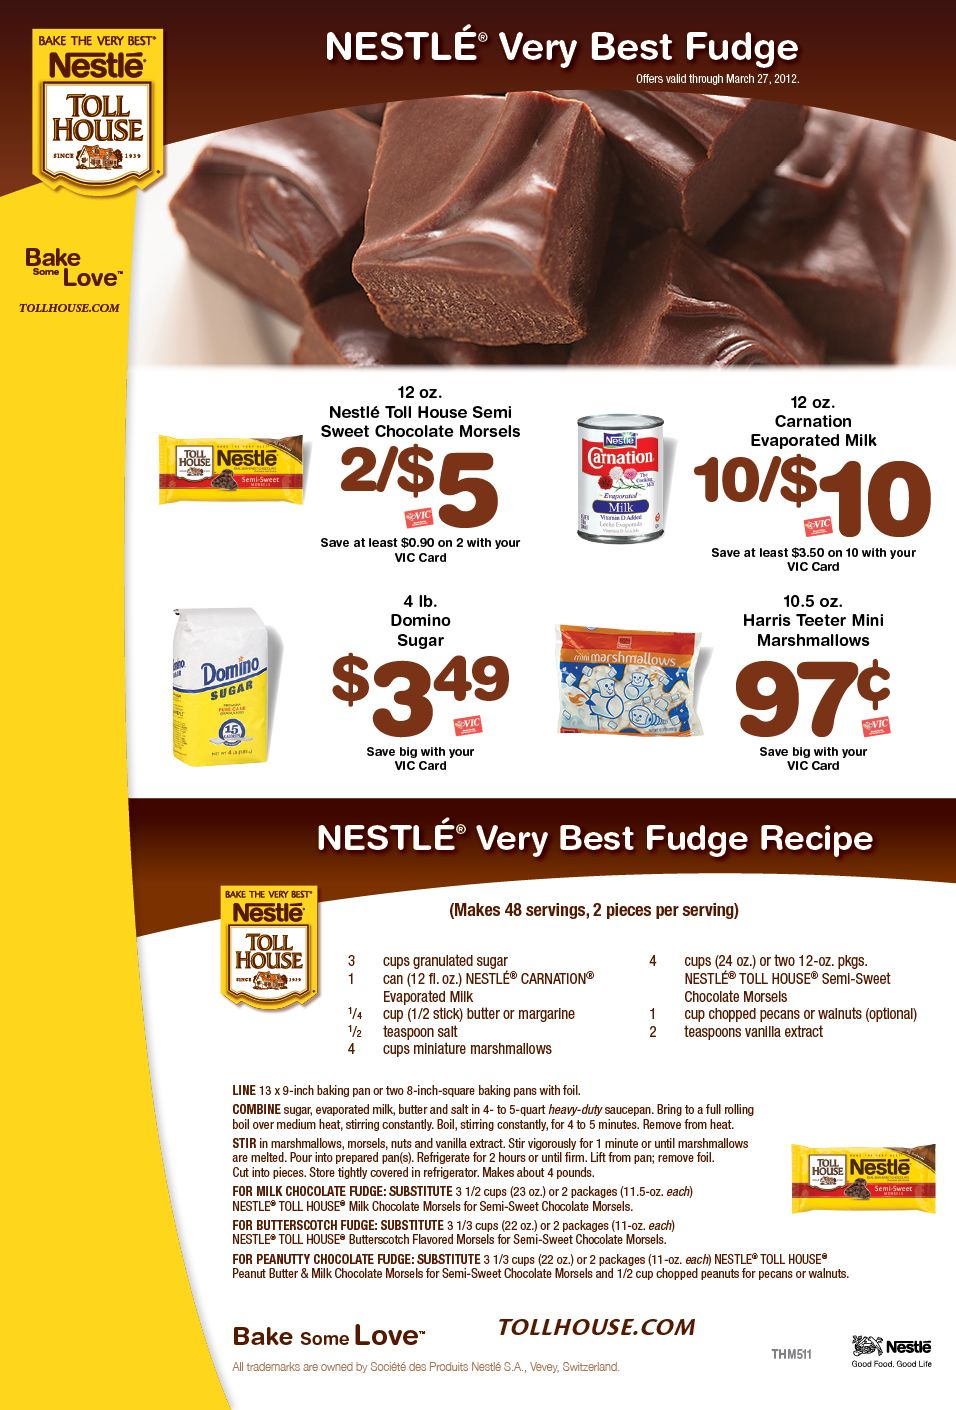 Nestles Fudge, just what I was looking 4!!! | What to eat ...